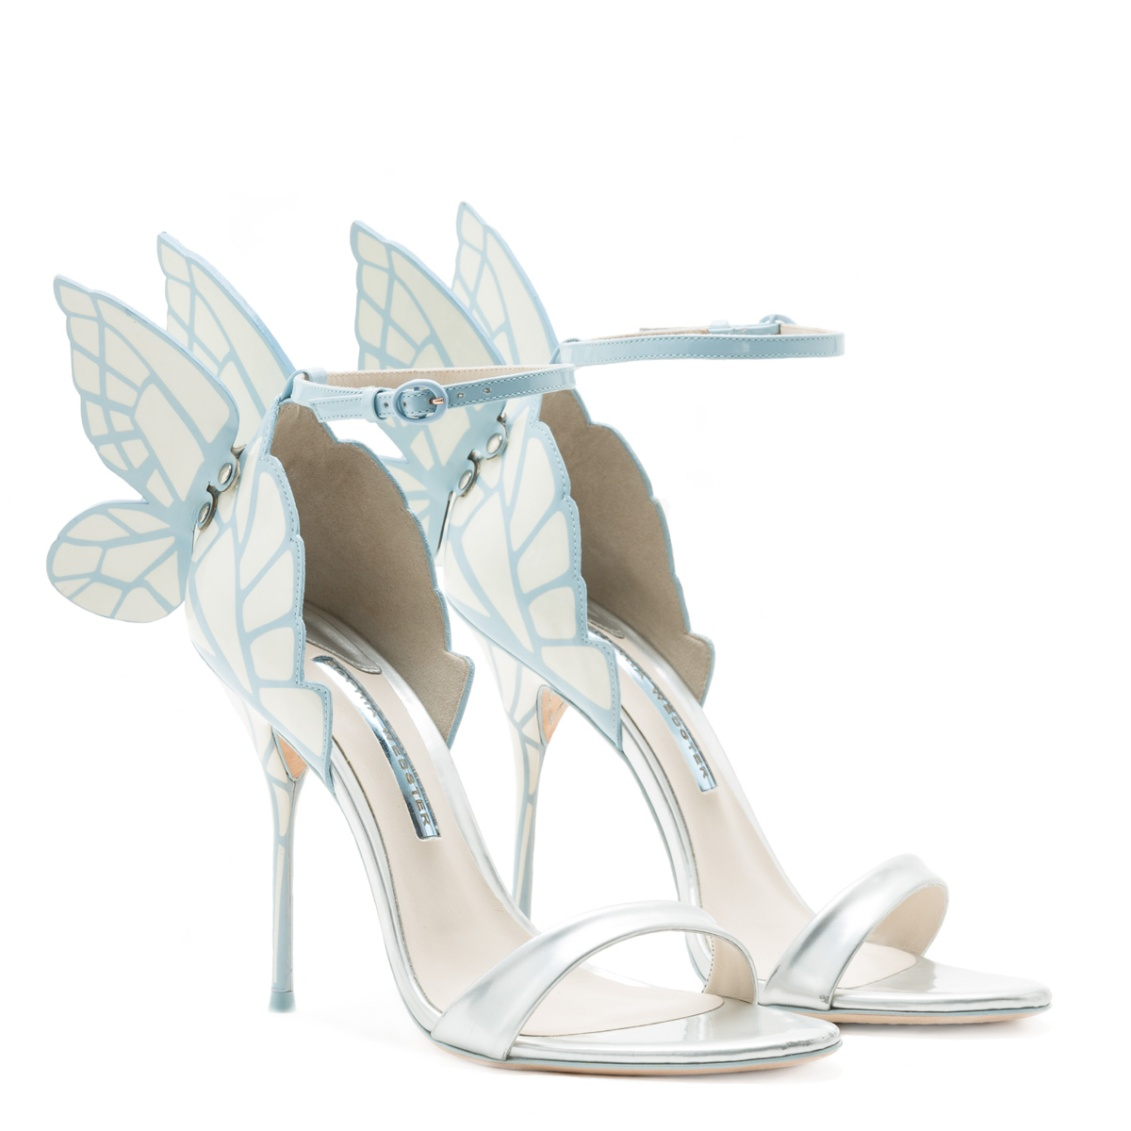 Sophia Webster Bridal Chiara Ice Sandal 2-1